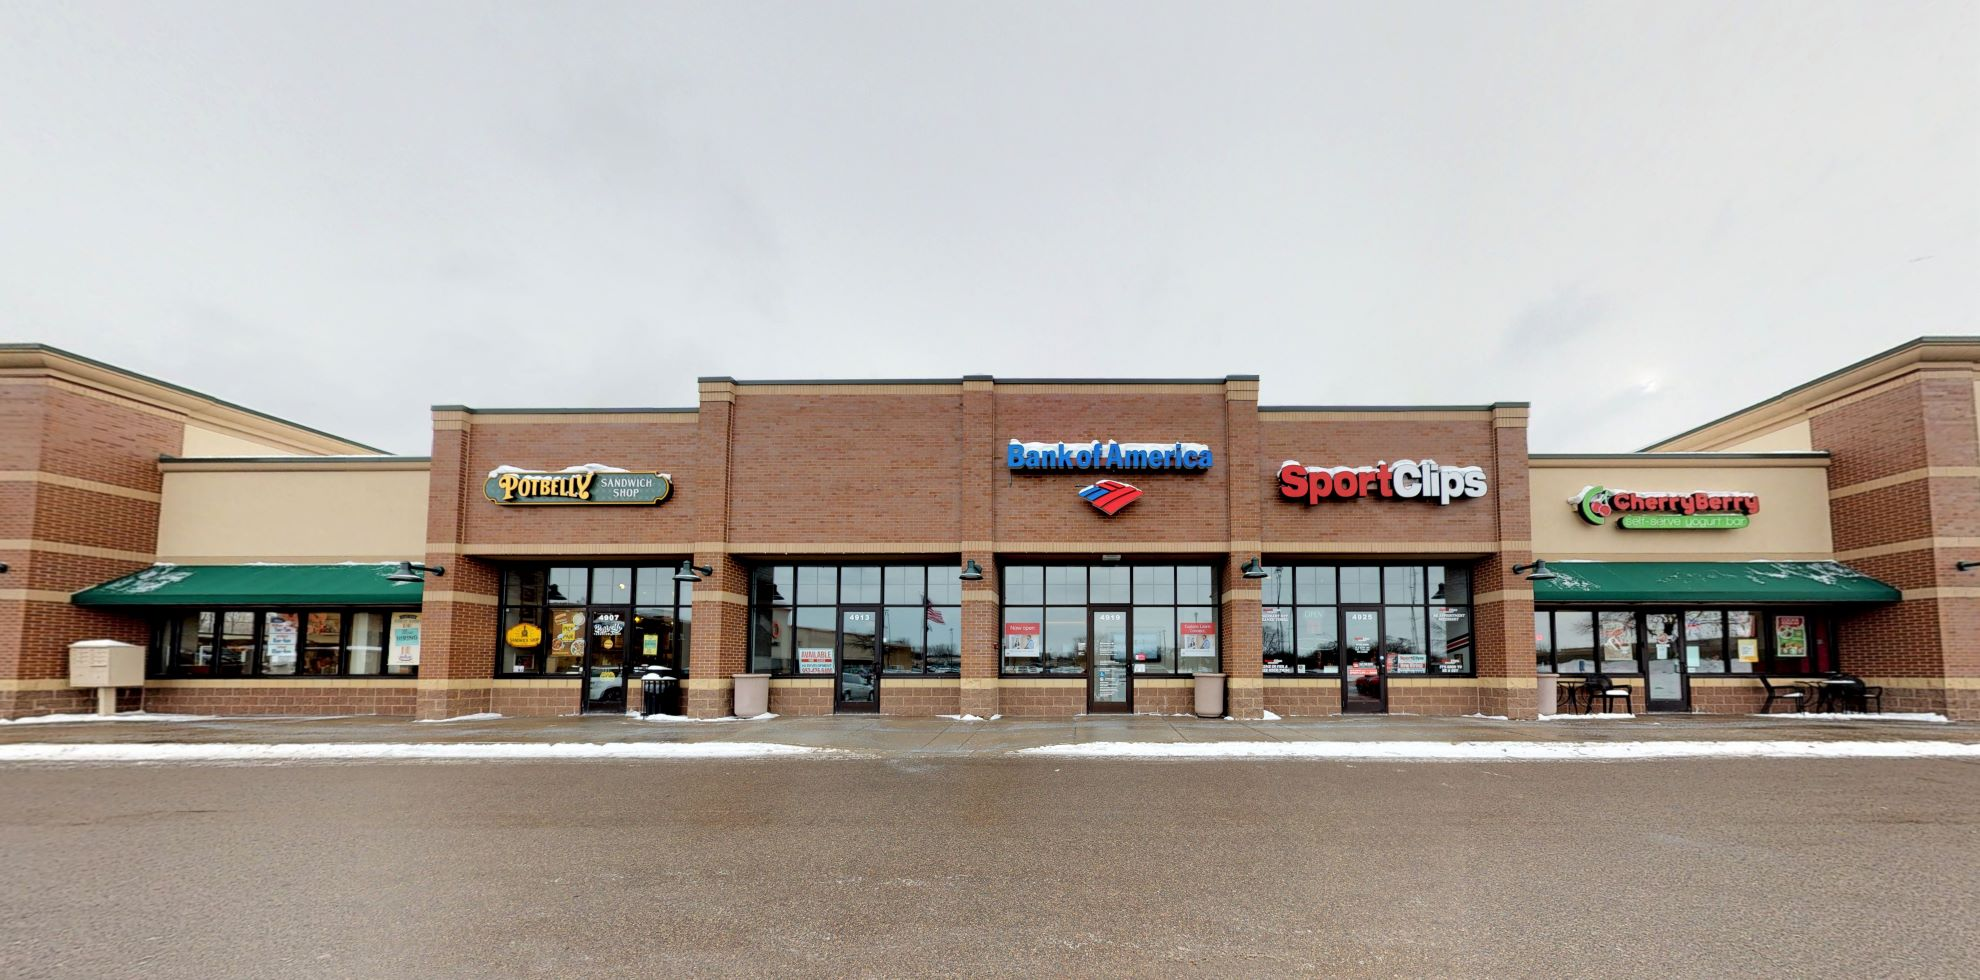 Bank of America Advanced Center with walk-up ATM | 4919 County Road 101, Minnetonka, MN 55345